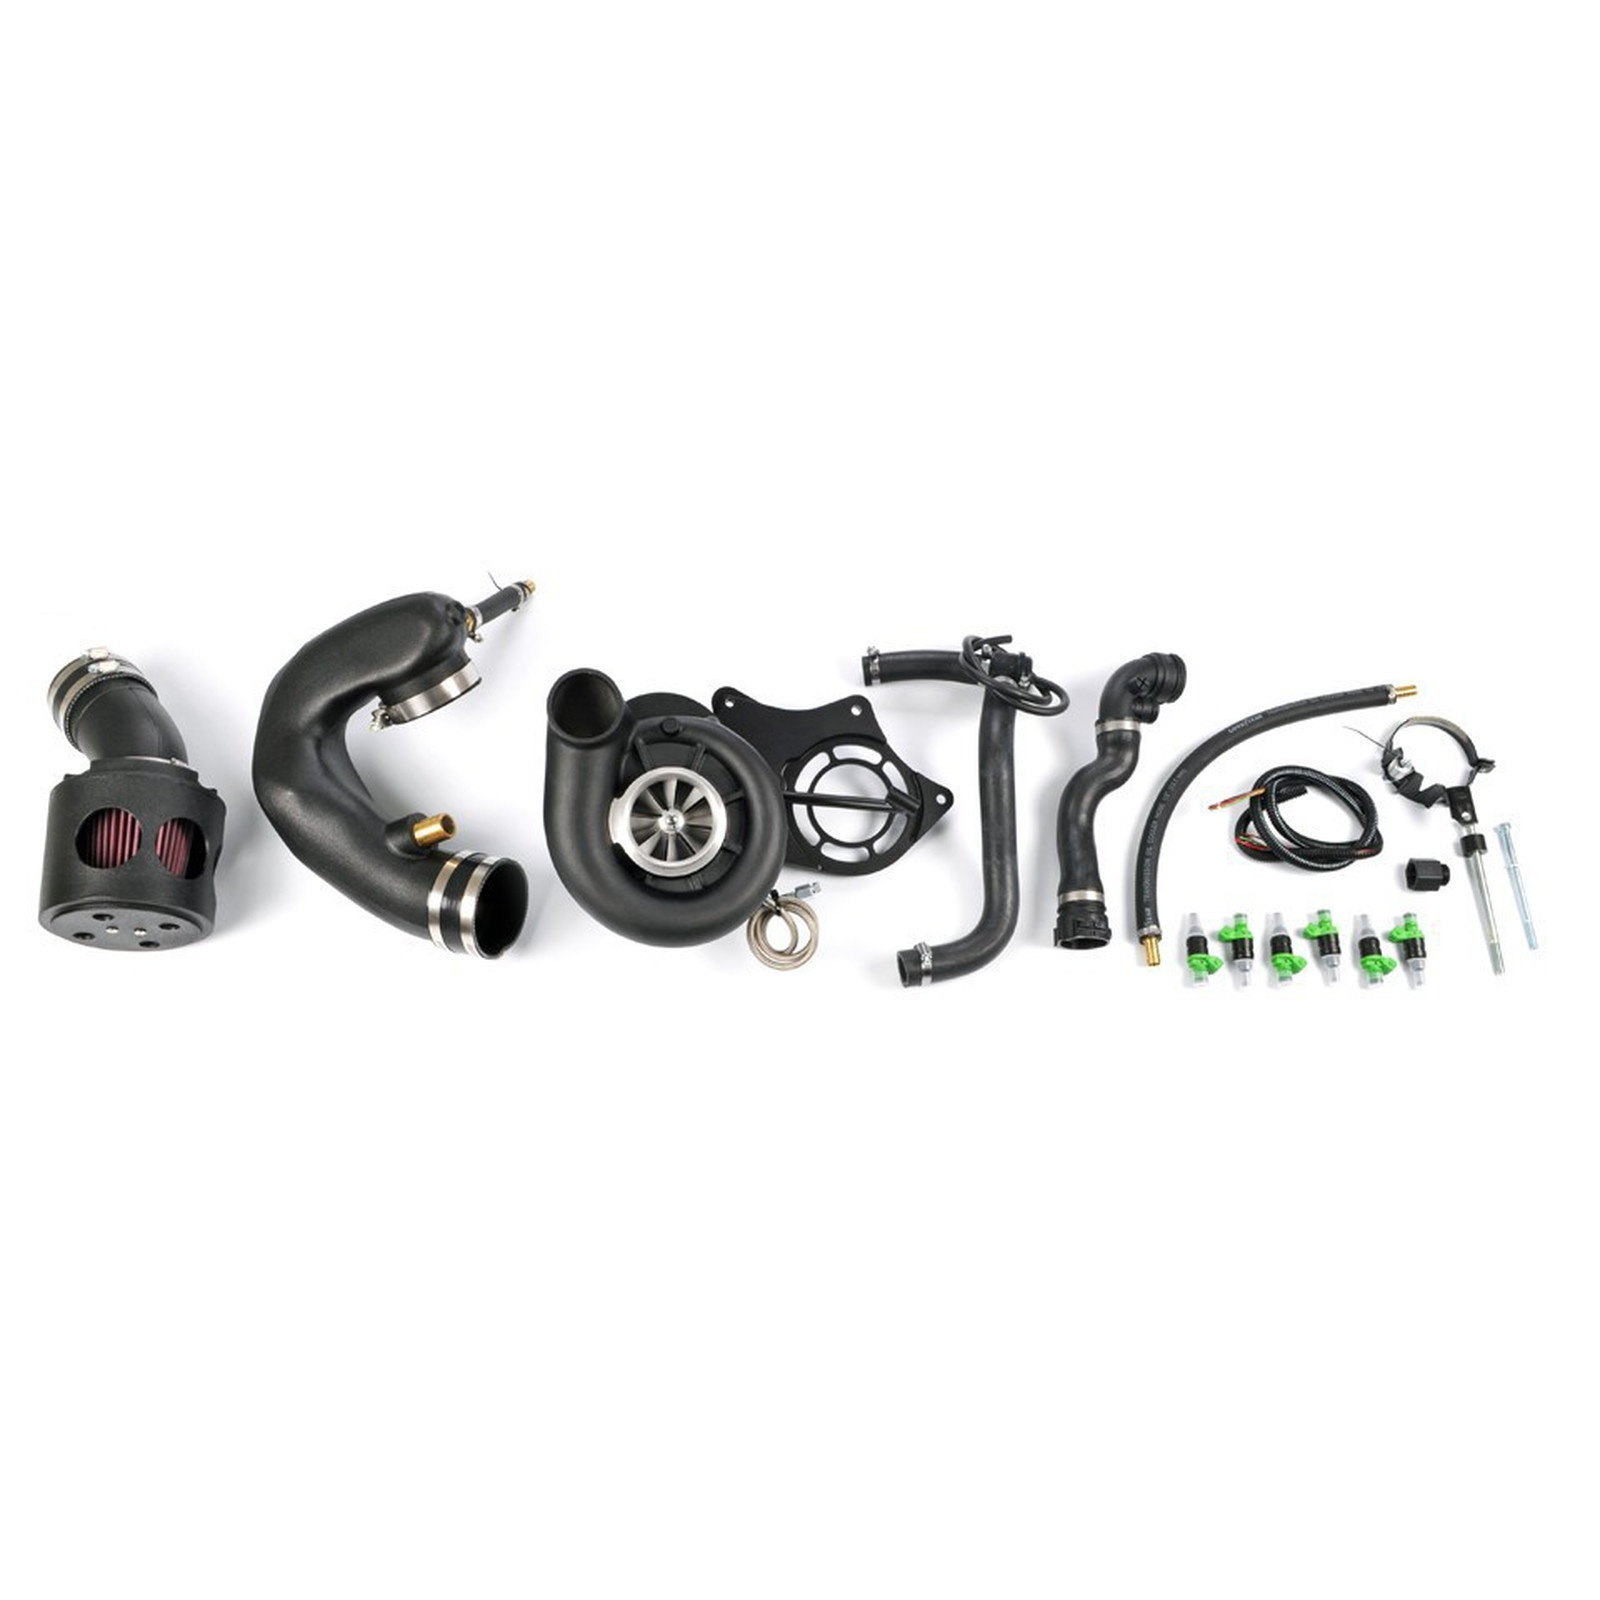 Bmw Z3 Turbo Kit: Vf Kompressorkit BMW Z3 3.0 (MKB: M54), 6.585,22